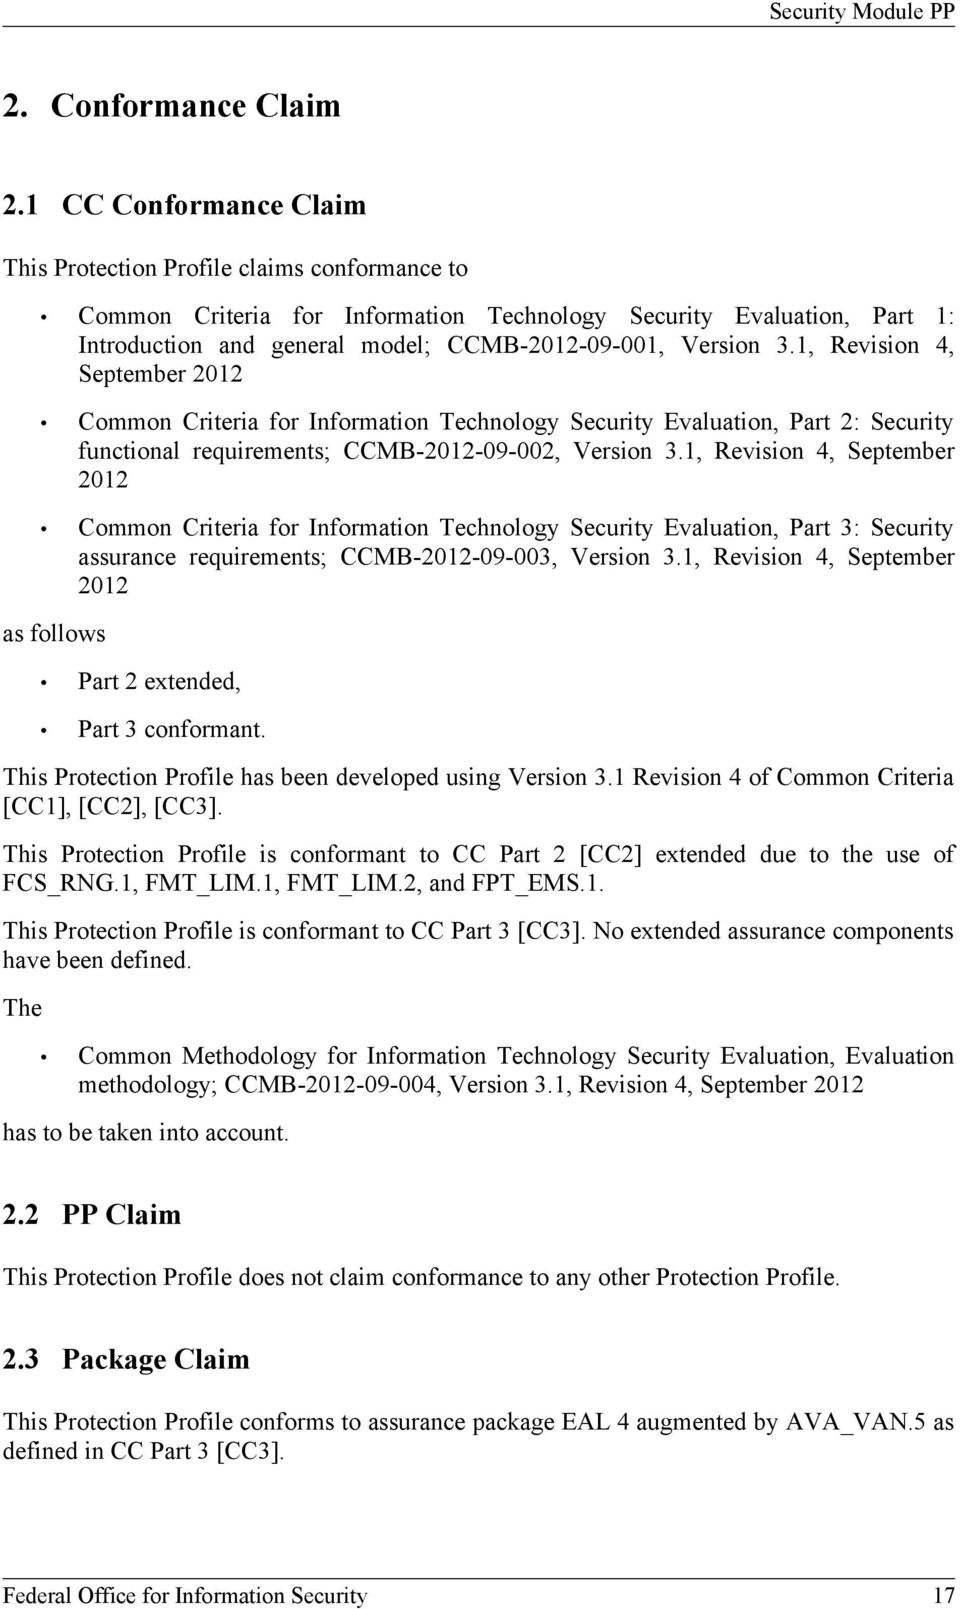 3.1, Revision 4, September 2012 Common Criteria for Information Technology Security Evaluation, Part 2: Security functional requirements; CCMB-2012-09-002, Version 3.